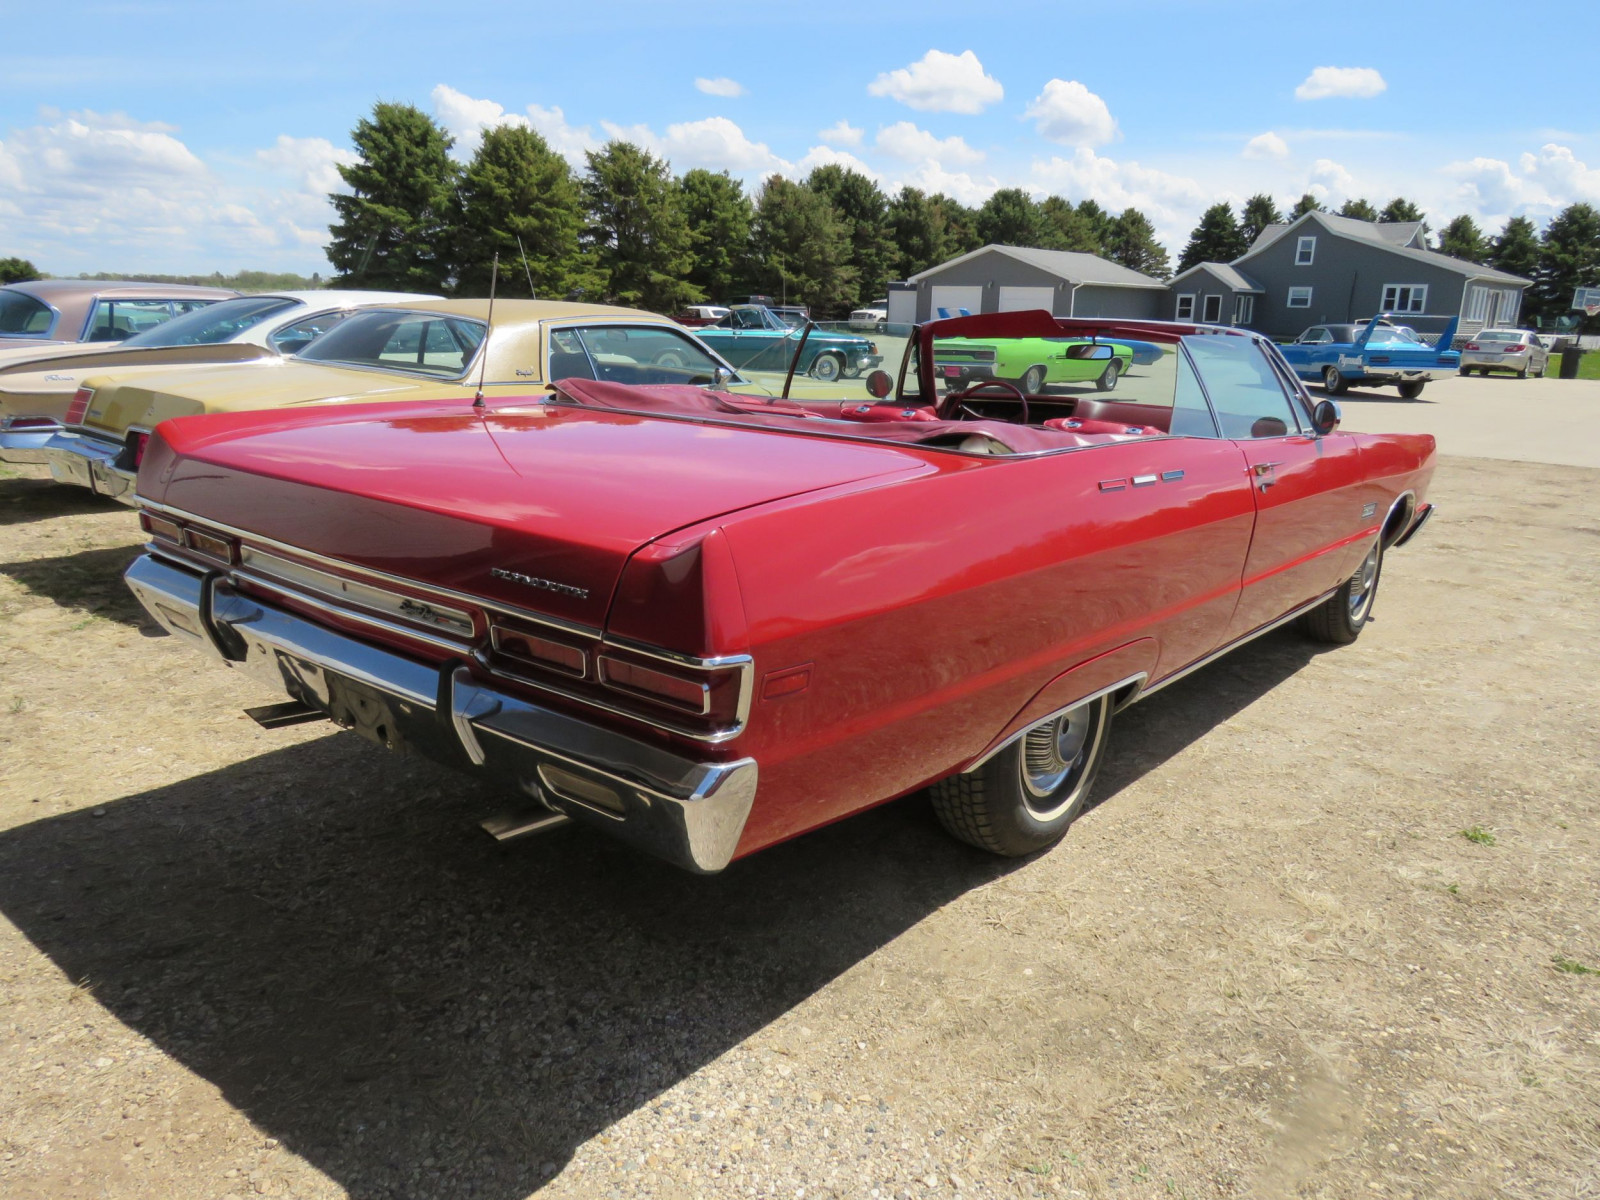 1969 Plymouth Sport Fury Convertible - Image 11